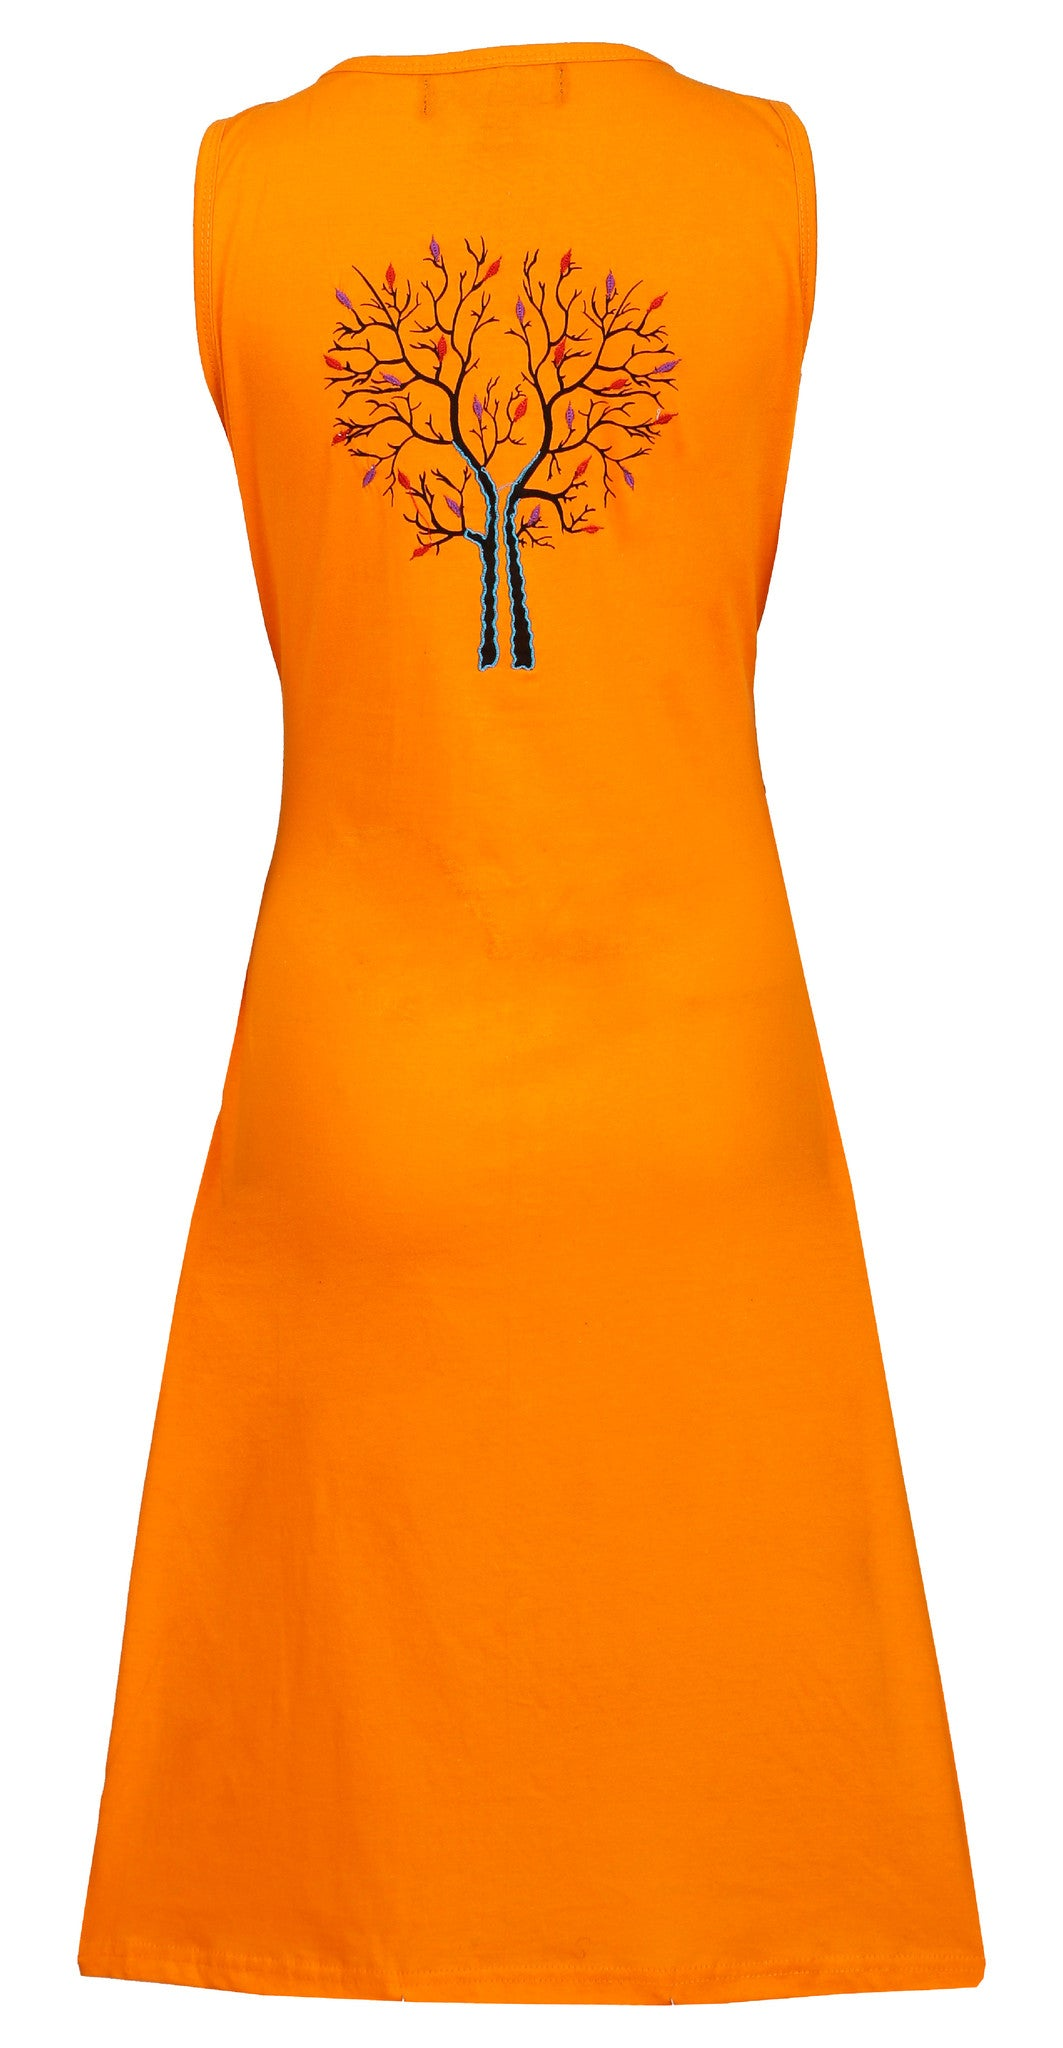 Ladies sleeveless dress with branches of winter tree print design- LMN6005 - Craze Trade Limited